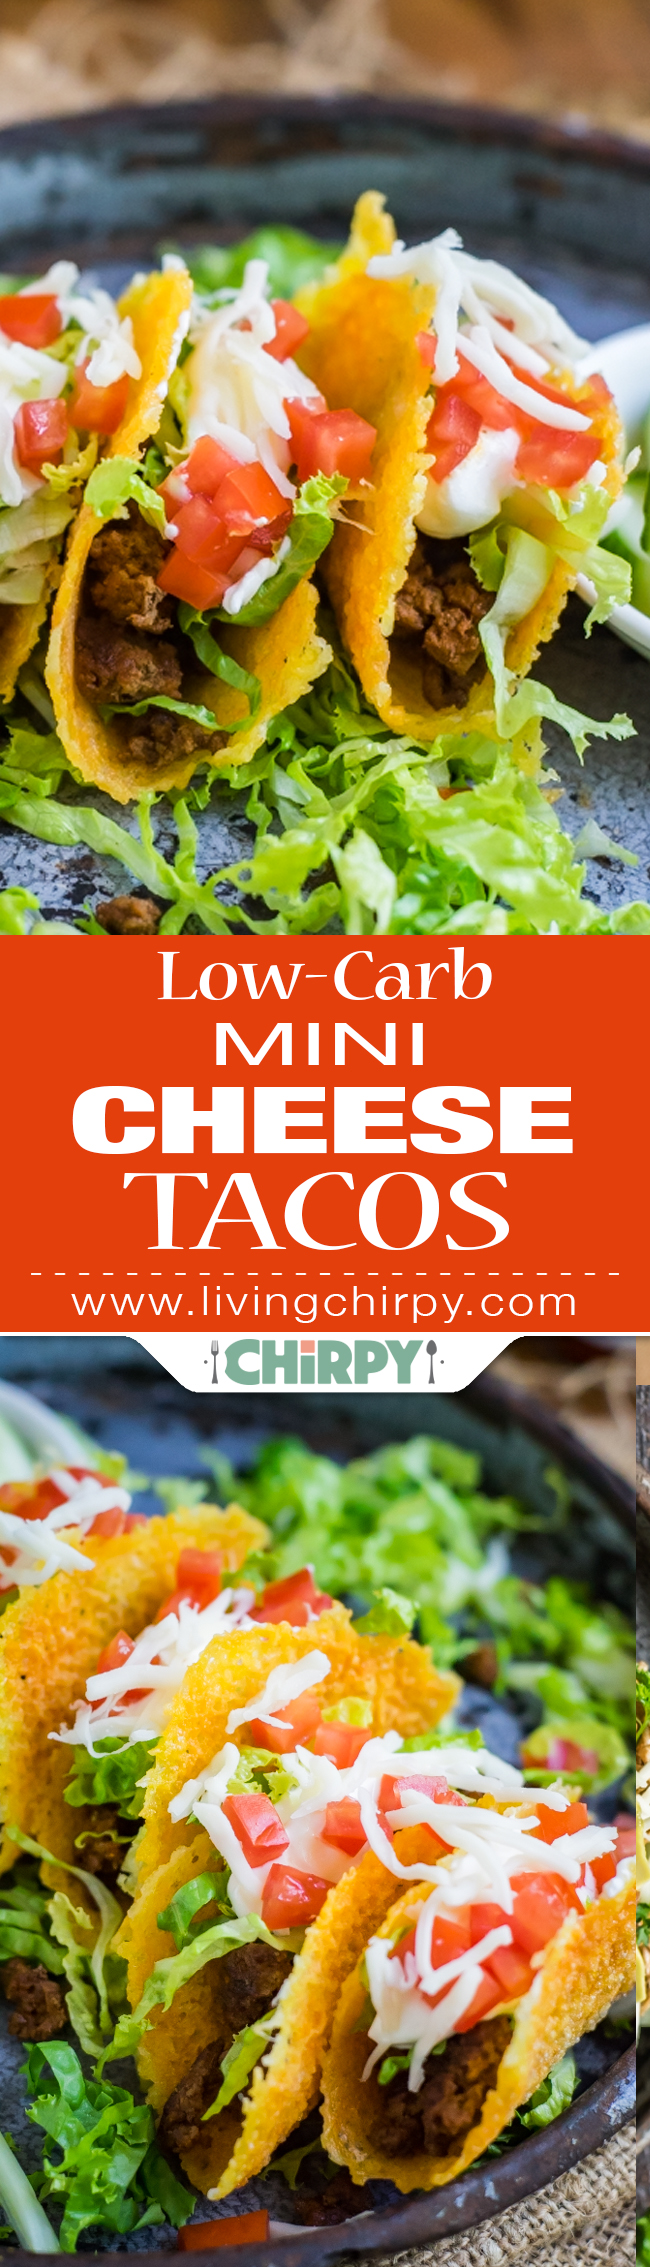 Low-Carb Mini Cheese Tacos | Living Chirpy